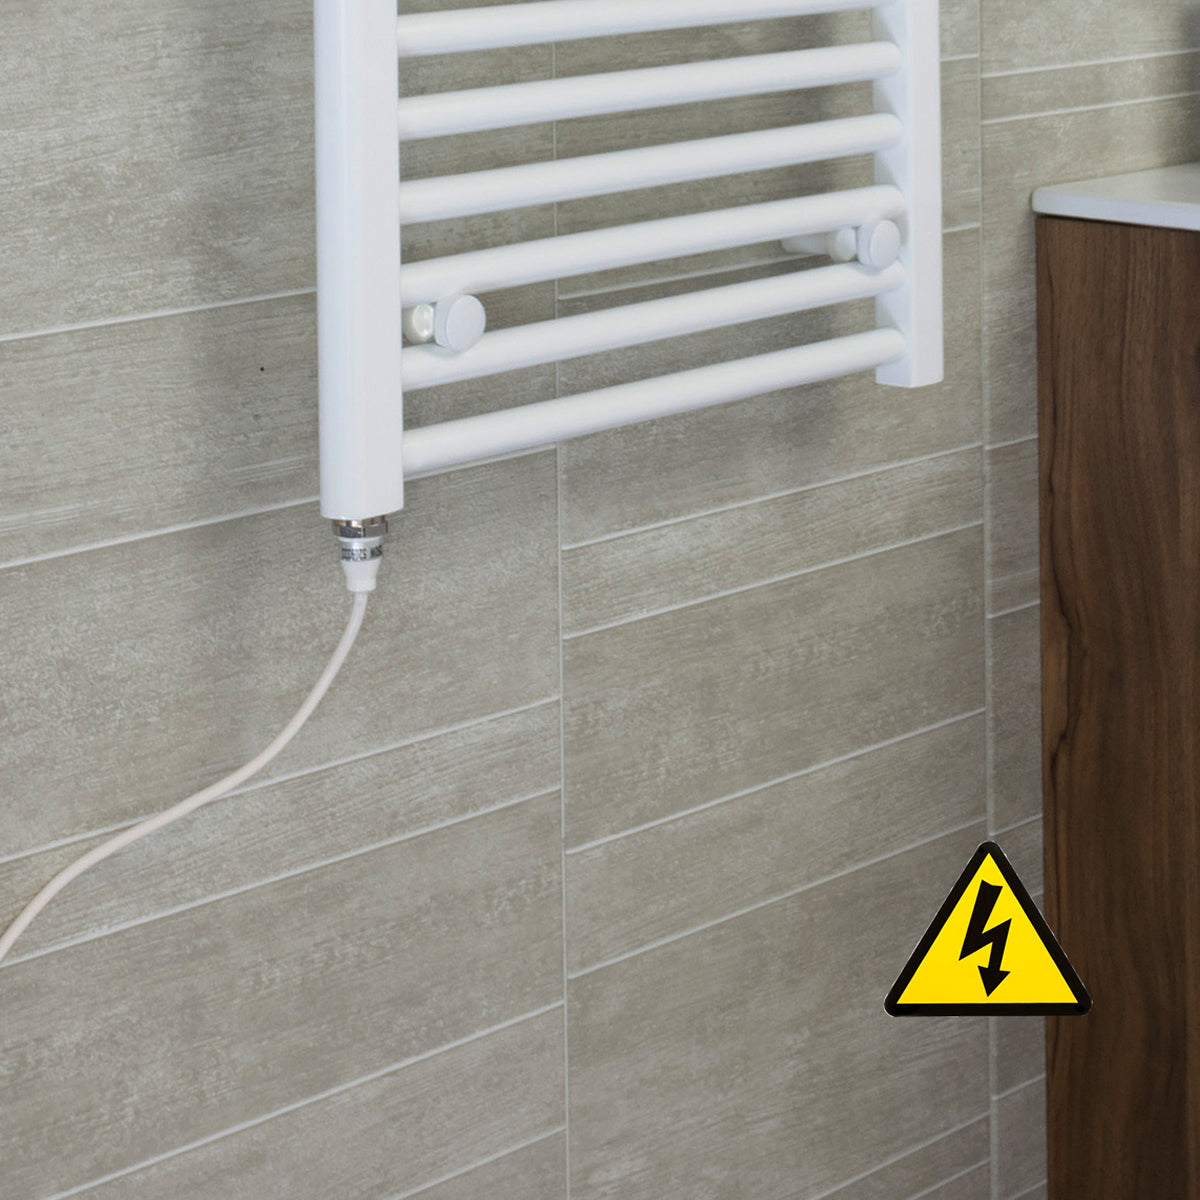 600mm Wide 1100mm High Pre-Filled White Electric Towel Rail Radiator With Single Heat Element